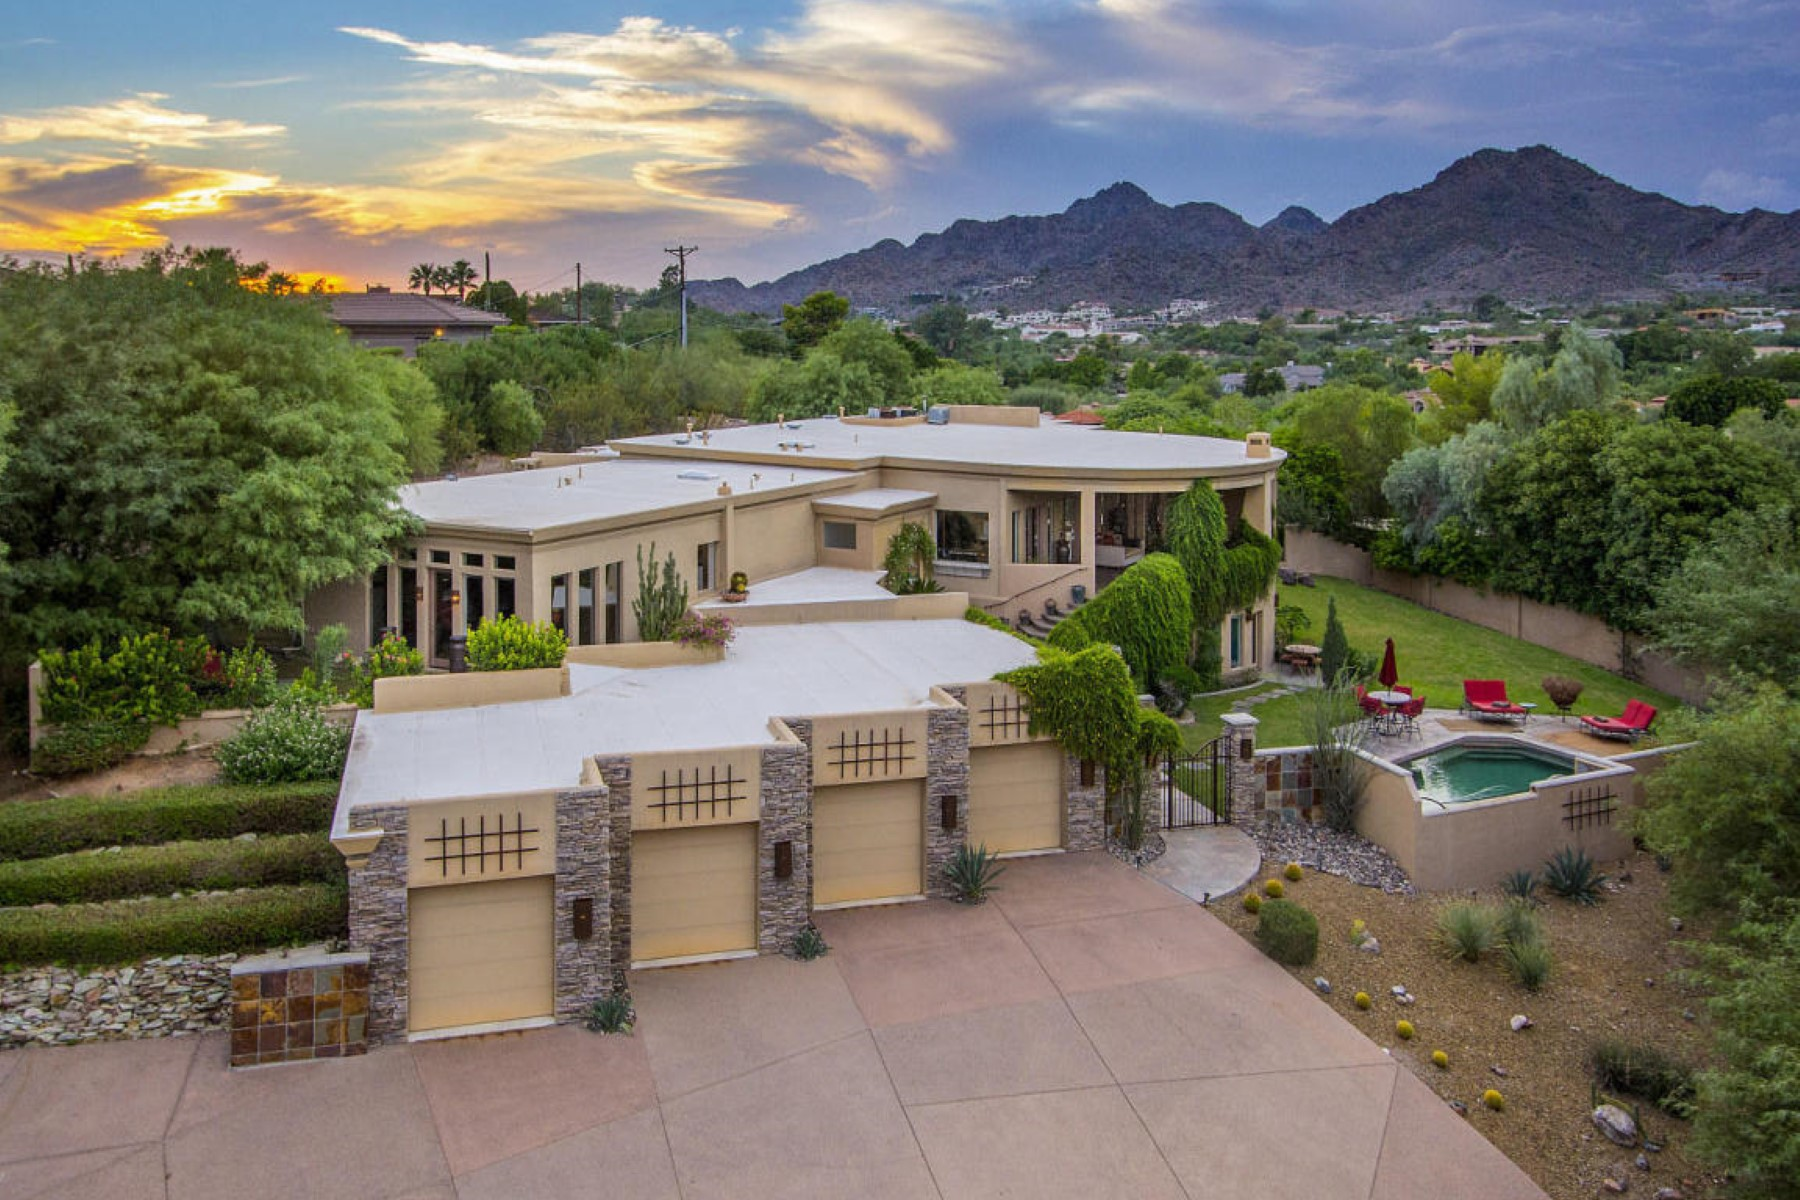 Einfamilienhaus für Verkauf beim Breathtaking Camelback Mountain views from this architecturally designed home 6134 N 44th St Paradise Valley, Arizona, 85253 Vereinigte Staaten